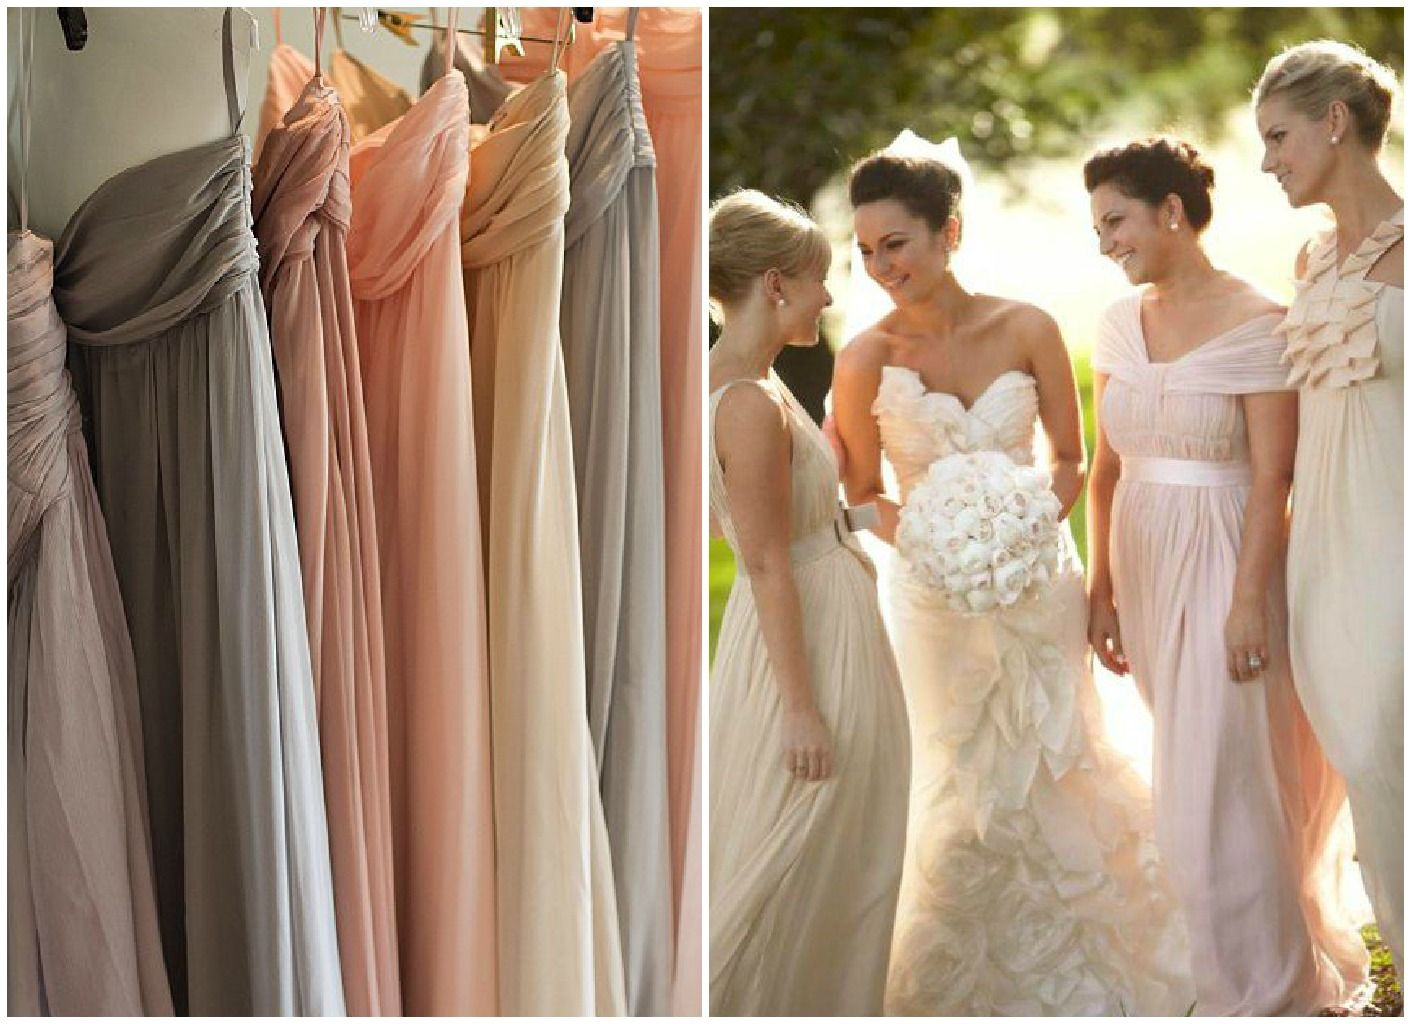 Neutral the in color for weddings pick your palette neutral across the pond monogamy monday bridesmaid dresses 25 exotic inspiration neutral bridesmaid dresses ombrellifo Image collections